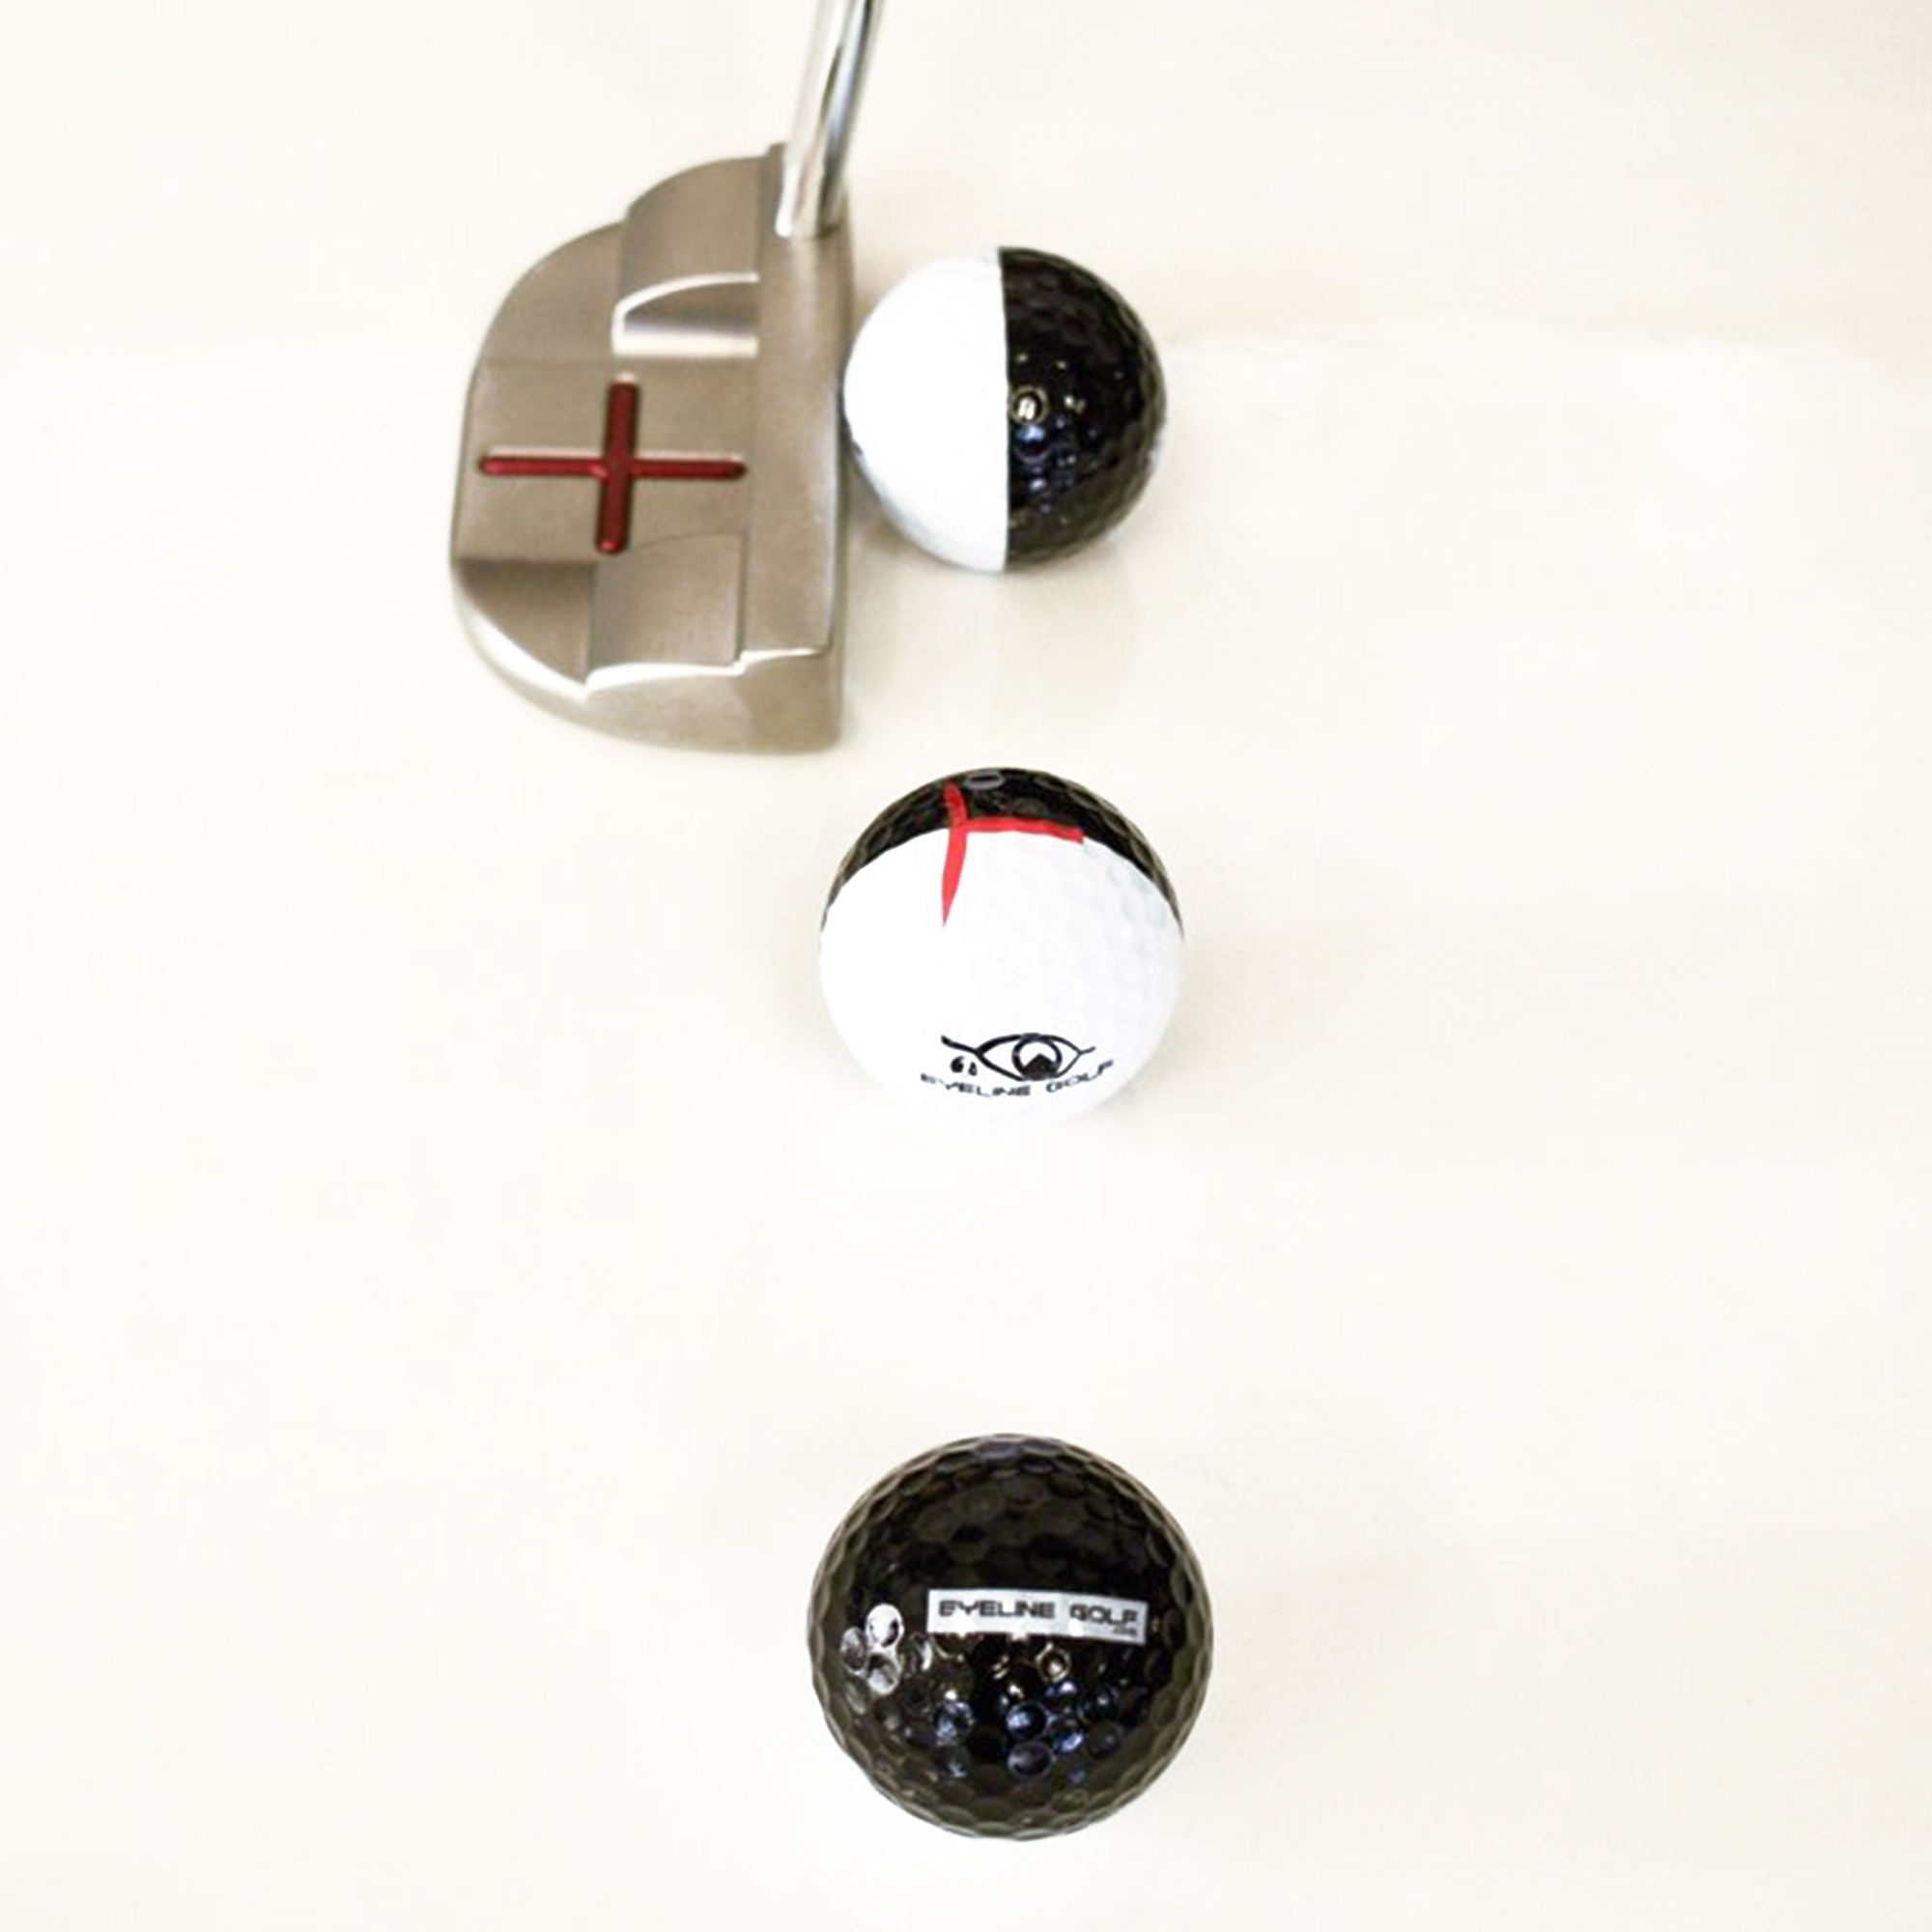 EyeLine 3-Pack MyRoll Training Balls 2 Colour 50/50 - Event Stuff Ltd Owns Putterfingers.com!